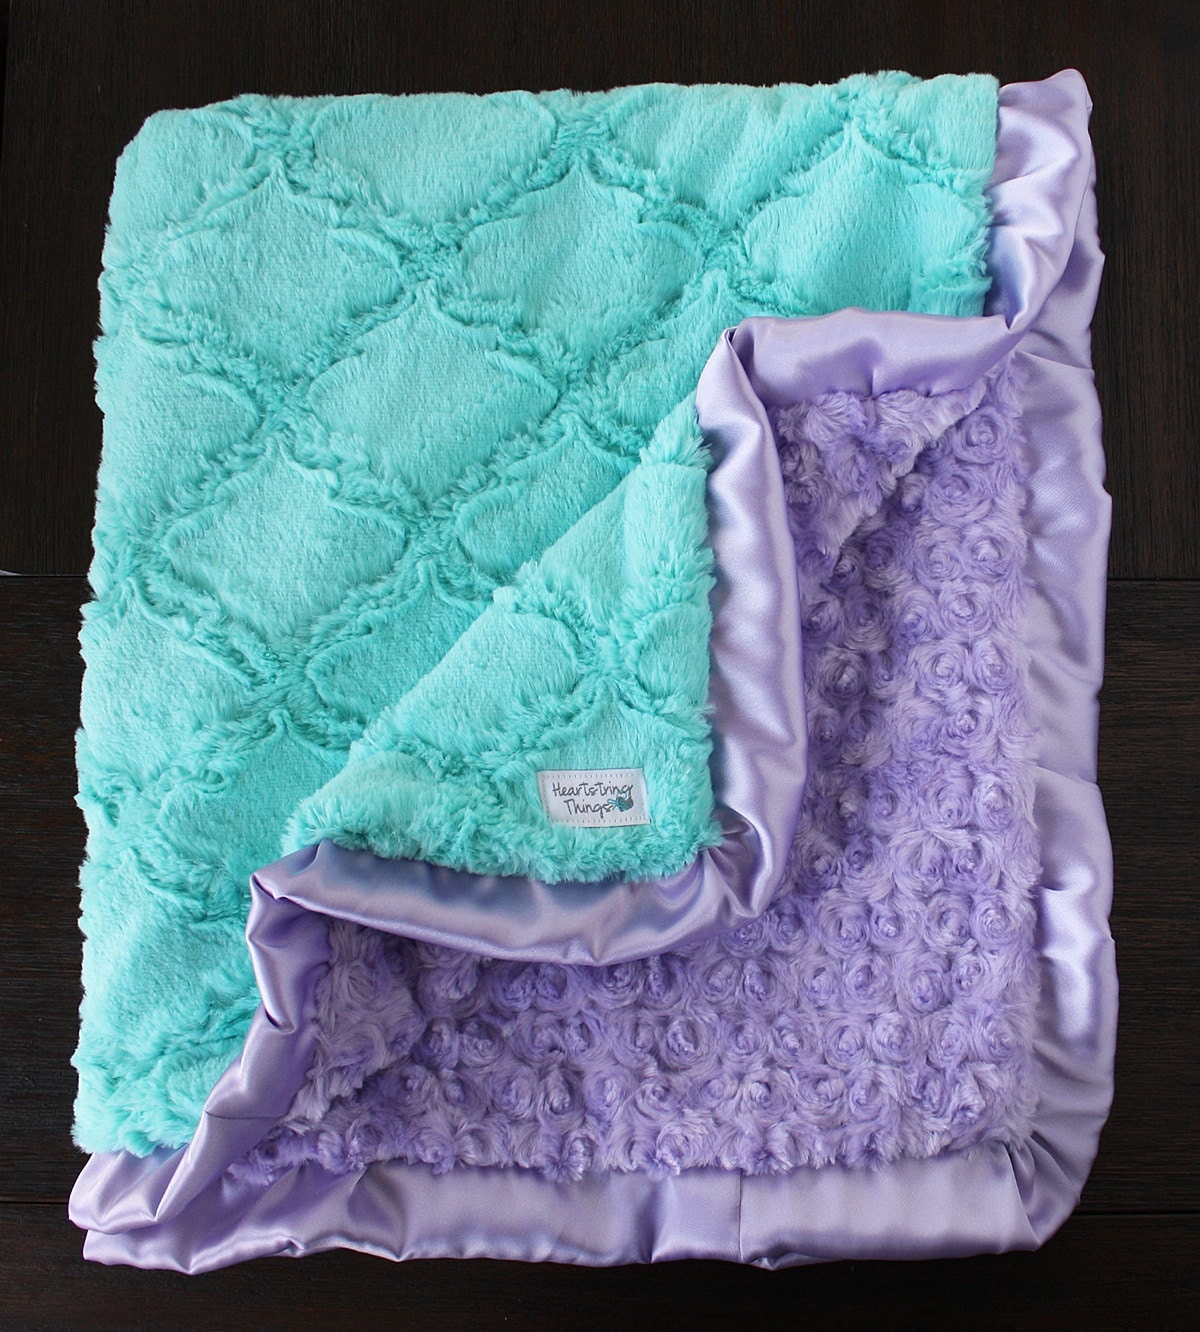 Remember to stock up on more baby blankets when winter comes rolling around—it's better to be safe and have extras when they're needed! Carefully select which materials fit your needs the best—from soft and supple cotton to extra warm Sherpa lined fabrics and everything in between, JCPenney is your one-stop shop for all things baby bedding!